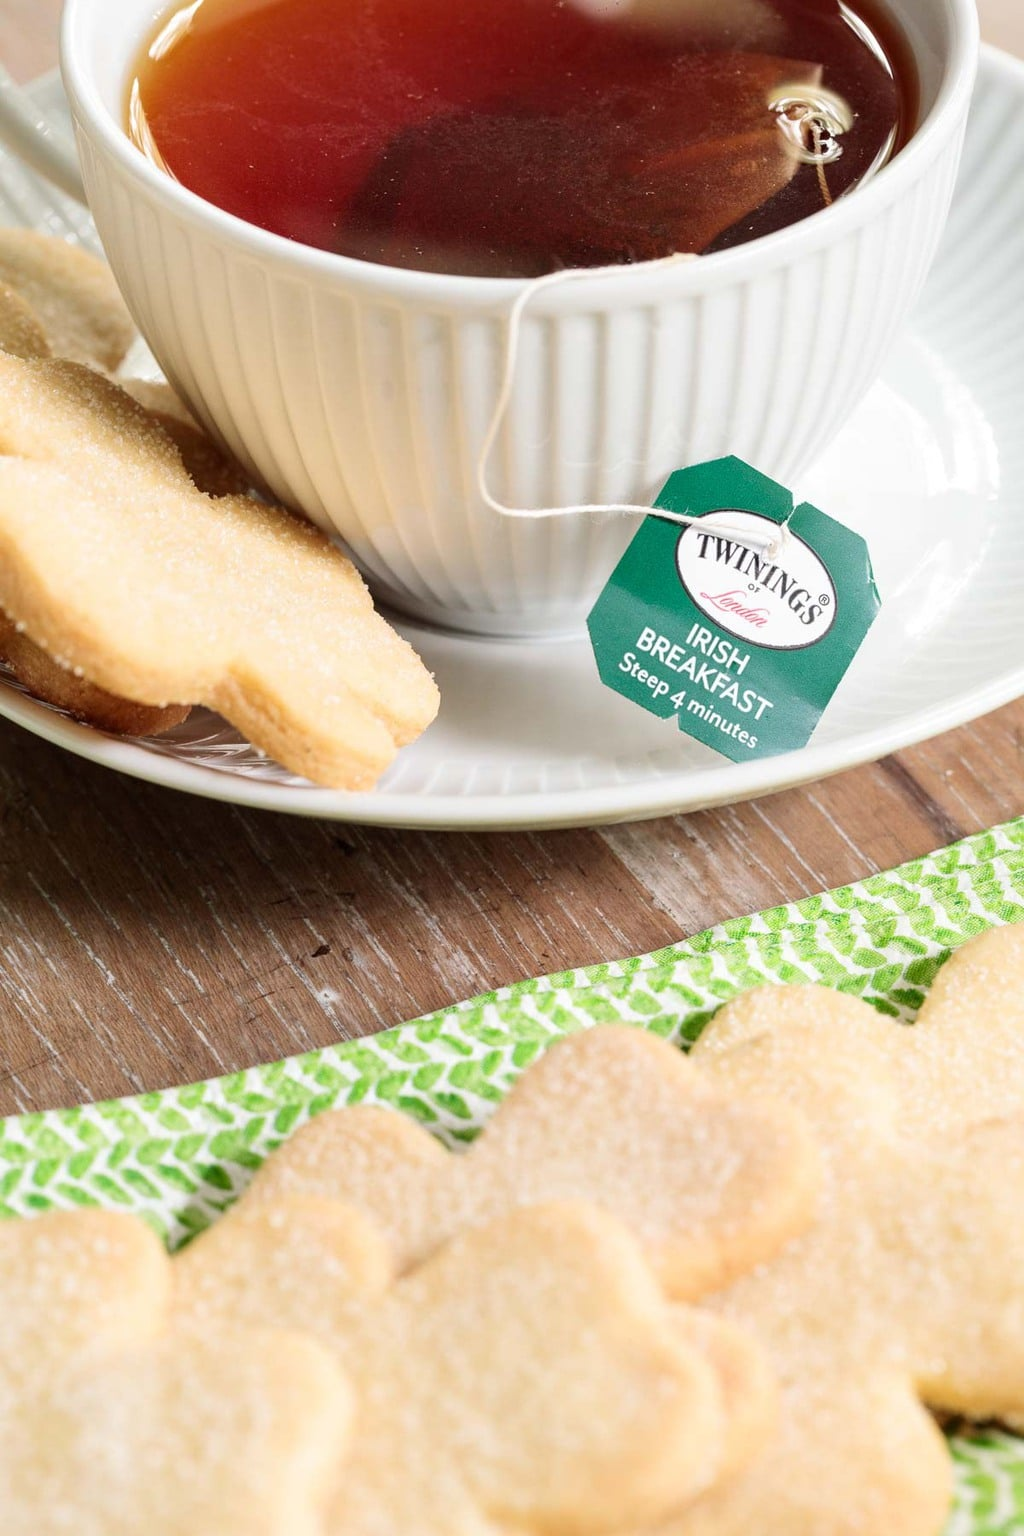 Closeup of a row of Easy Irish Shortbread Cookies with a cup of Twinnings Irish Breakfast tea in the background.